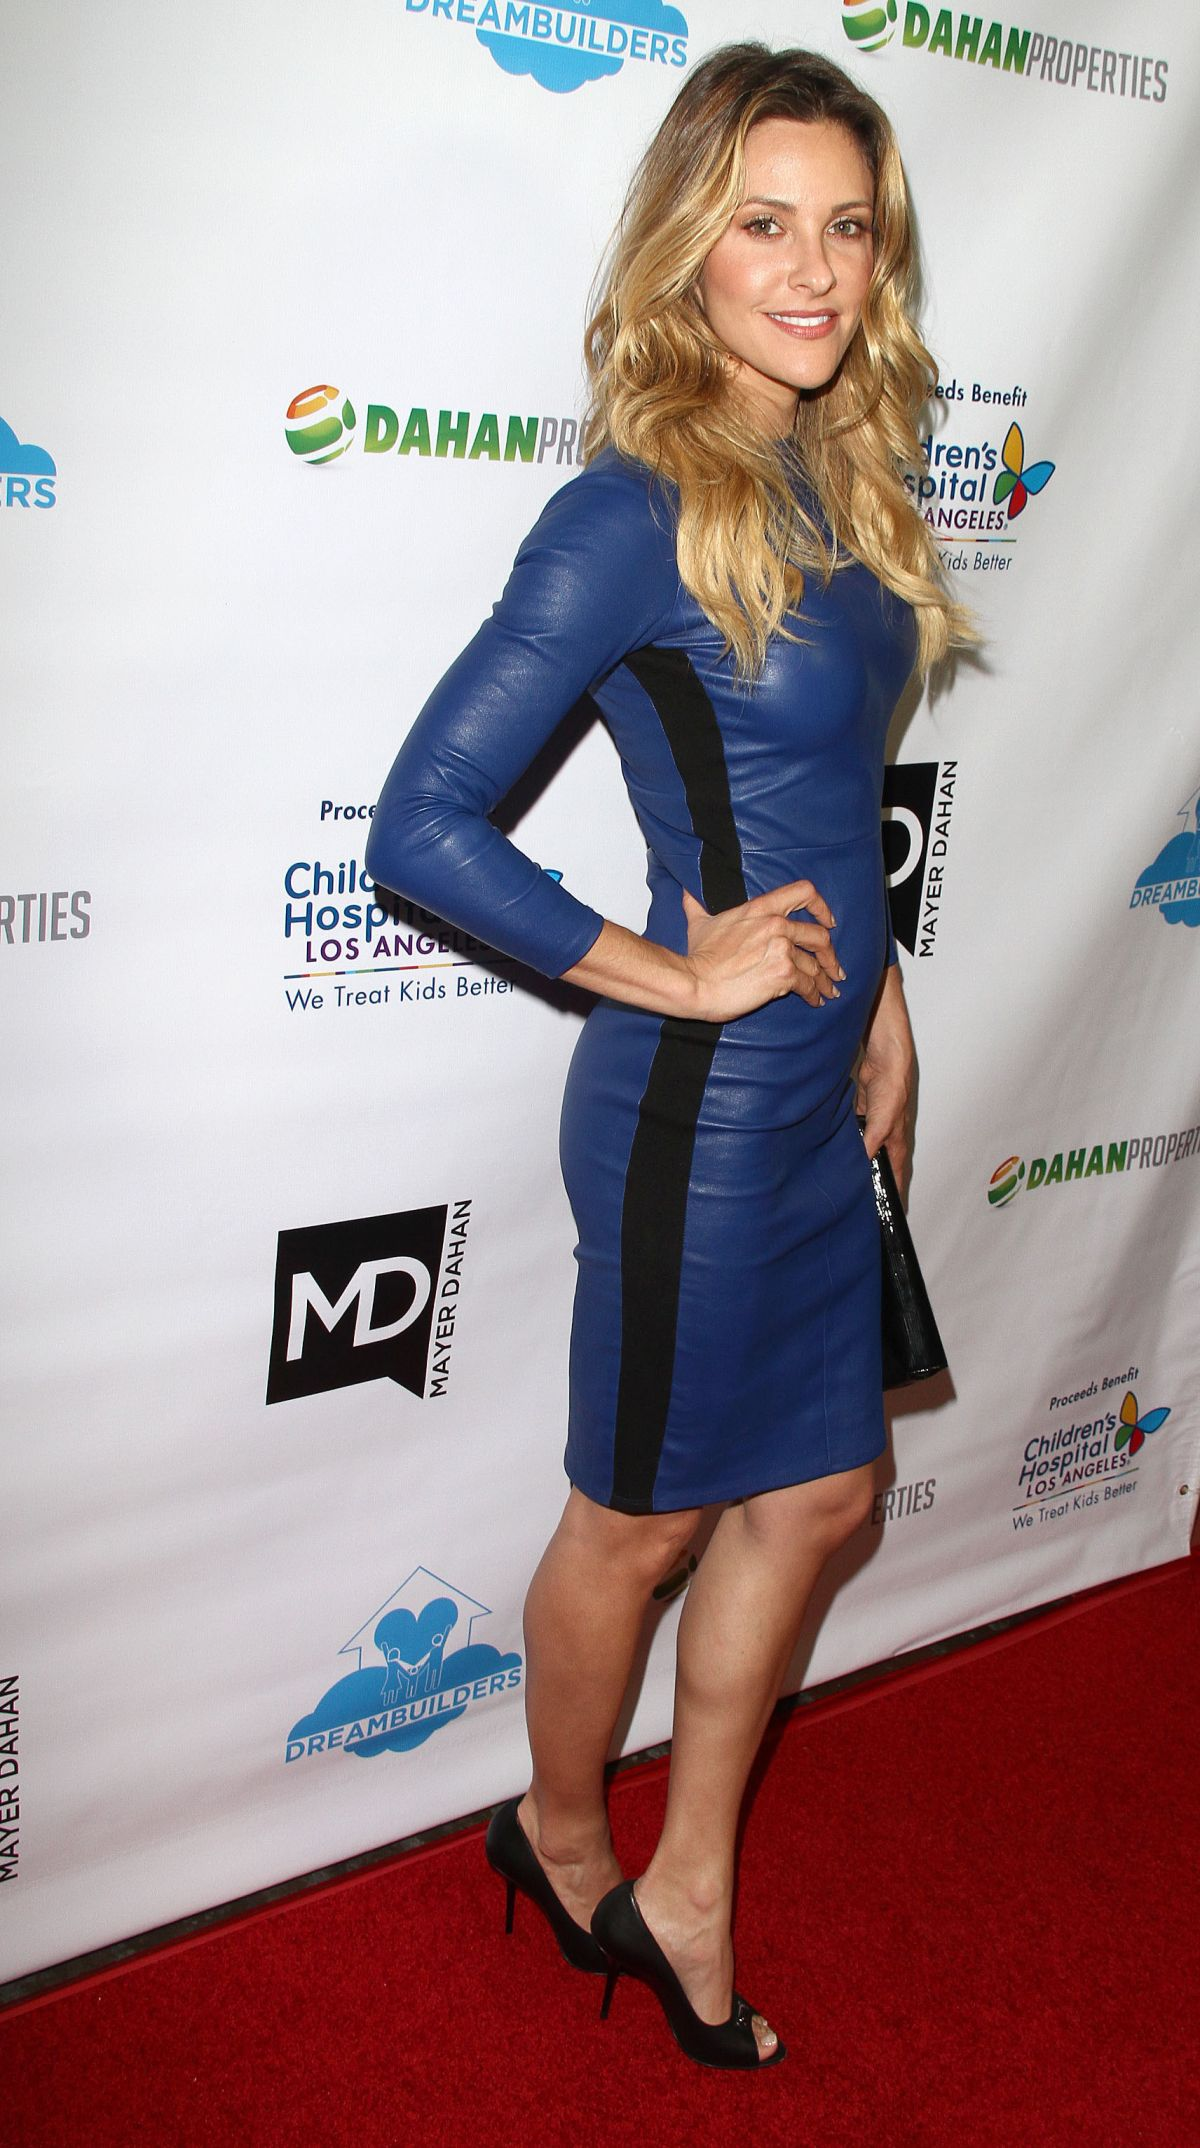 Jill wagner pictures images photos images77 com